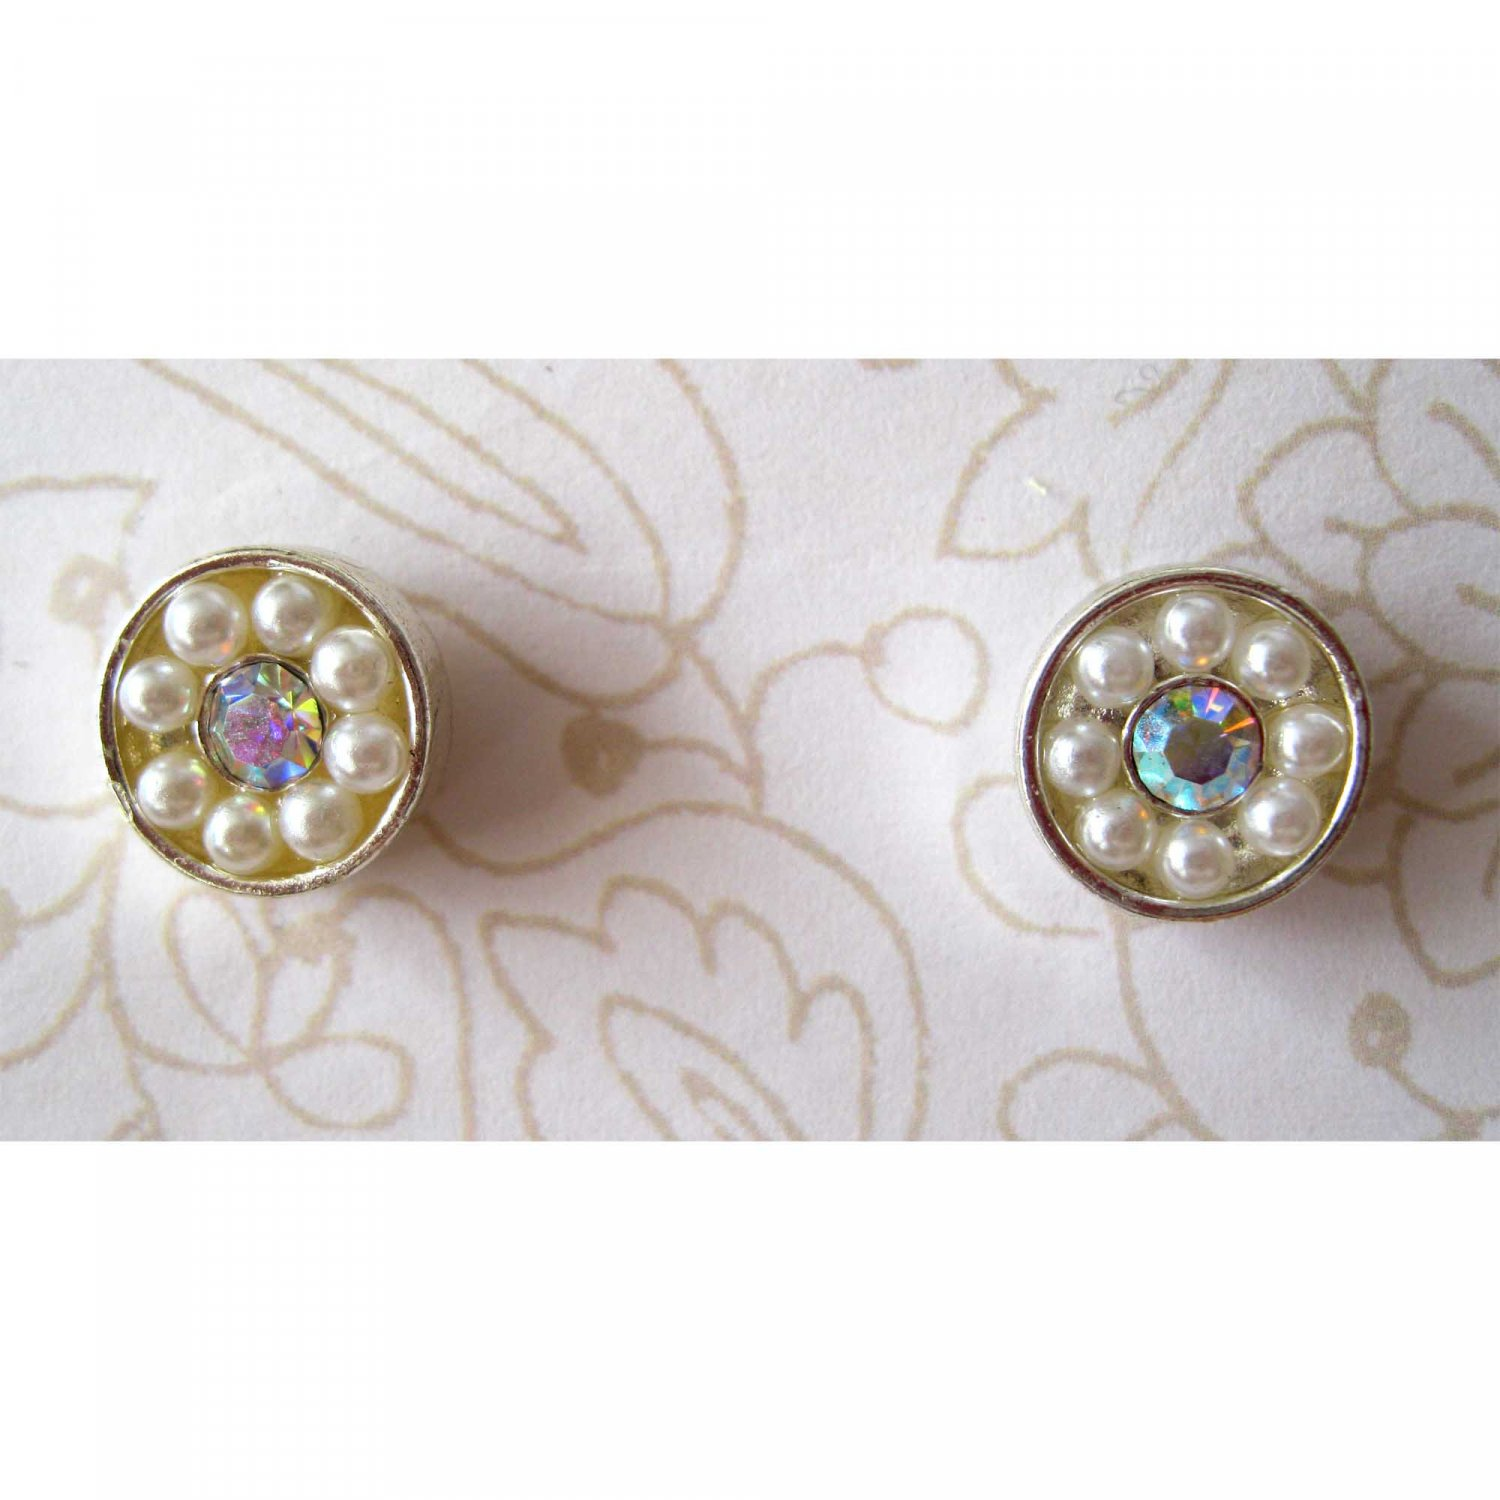 Pearl silver stud earrings with aurora borealis crystal center {1513e}